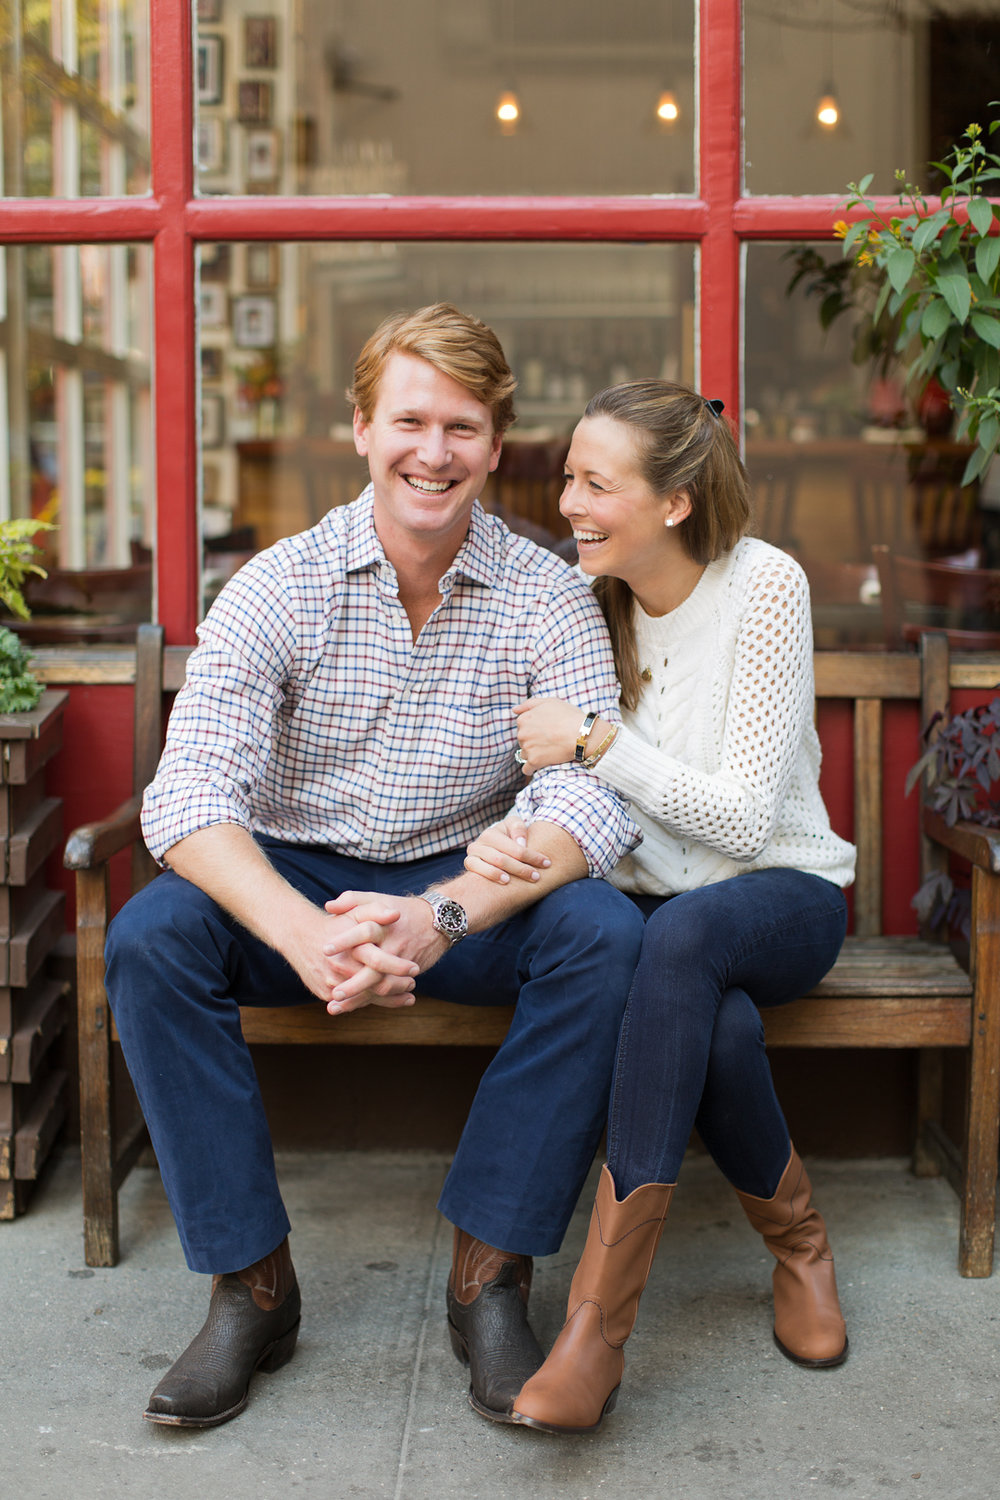 Melissa Kruse Photography - Megan & Tyler West Village Engagement Photos-45.jpg